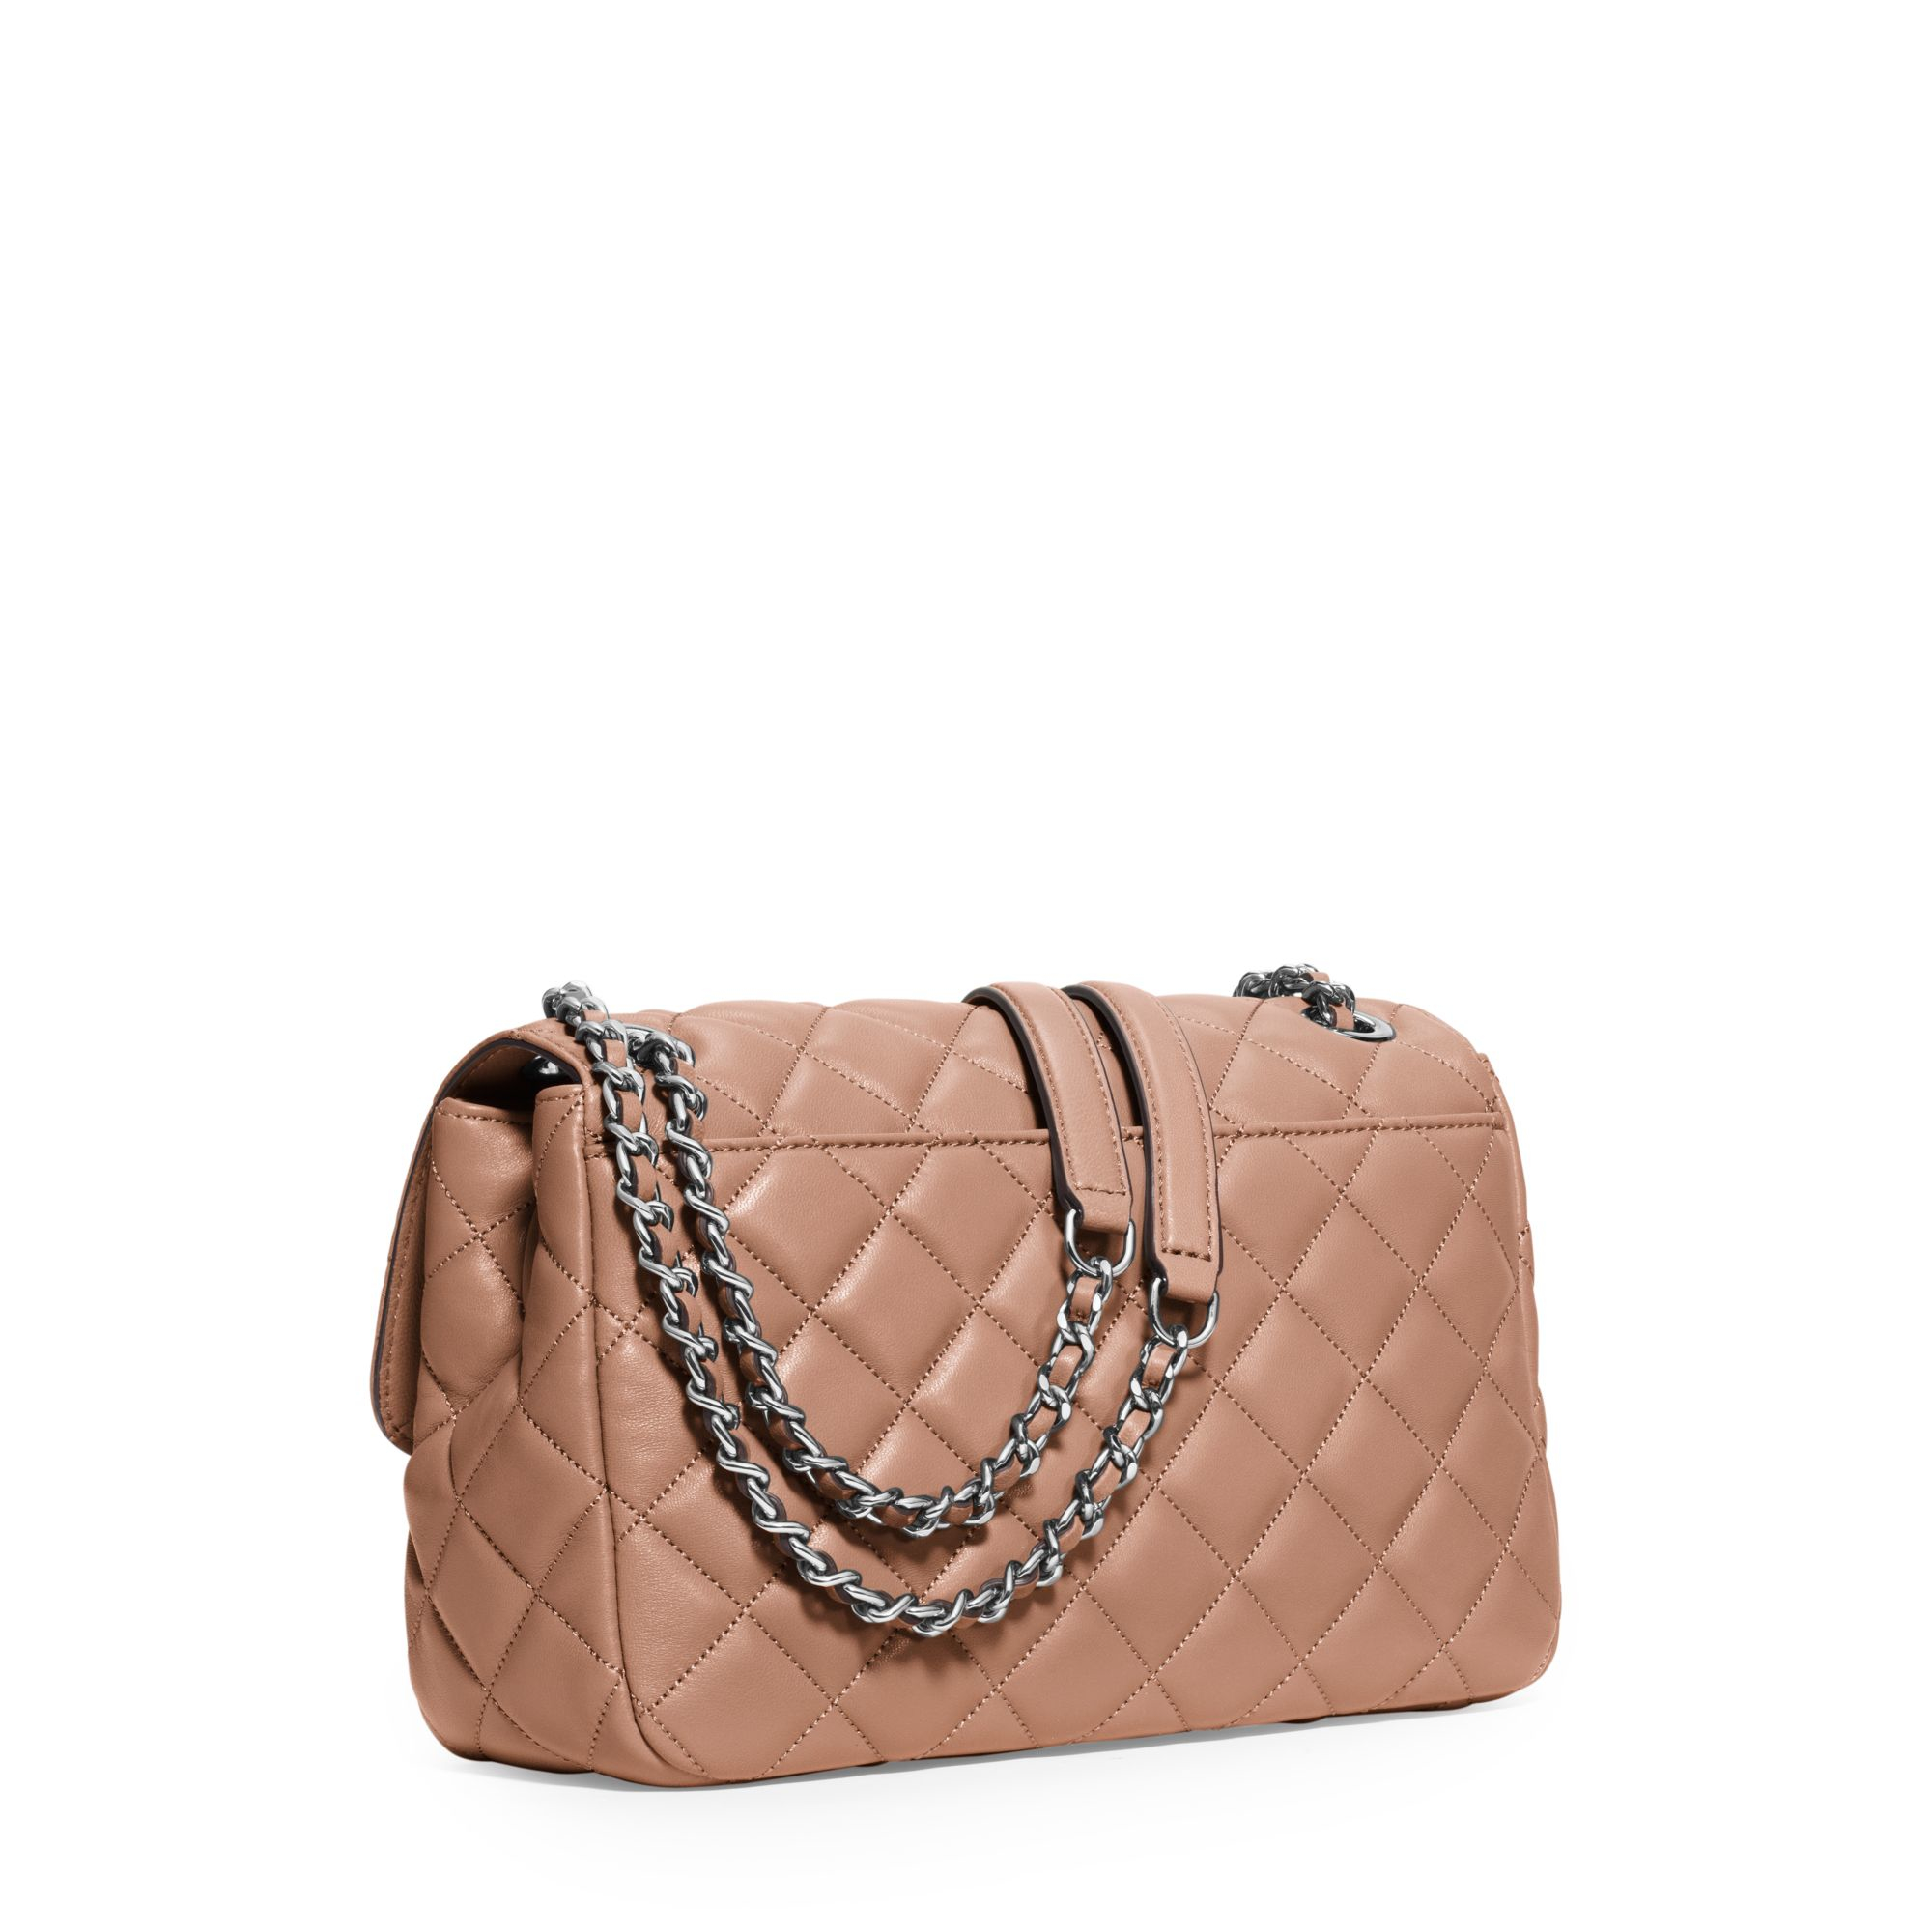 Michael kors Sloan Large Quilted-leather Shoulder Bag in Pink | Lyst